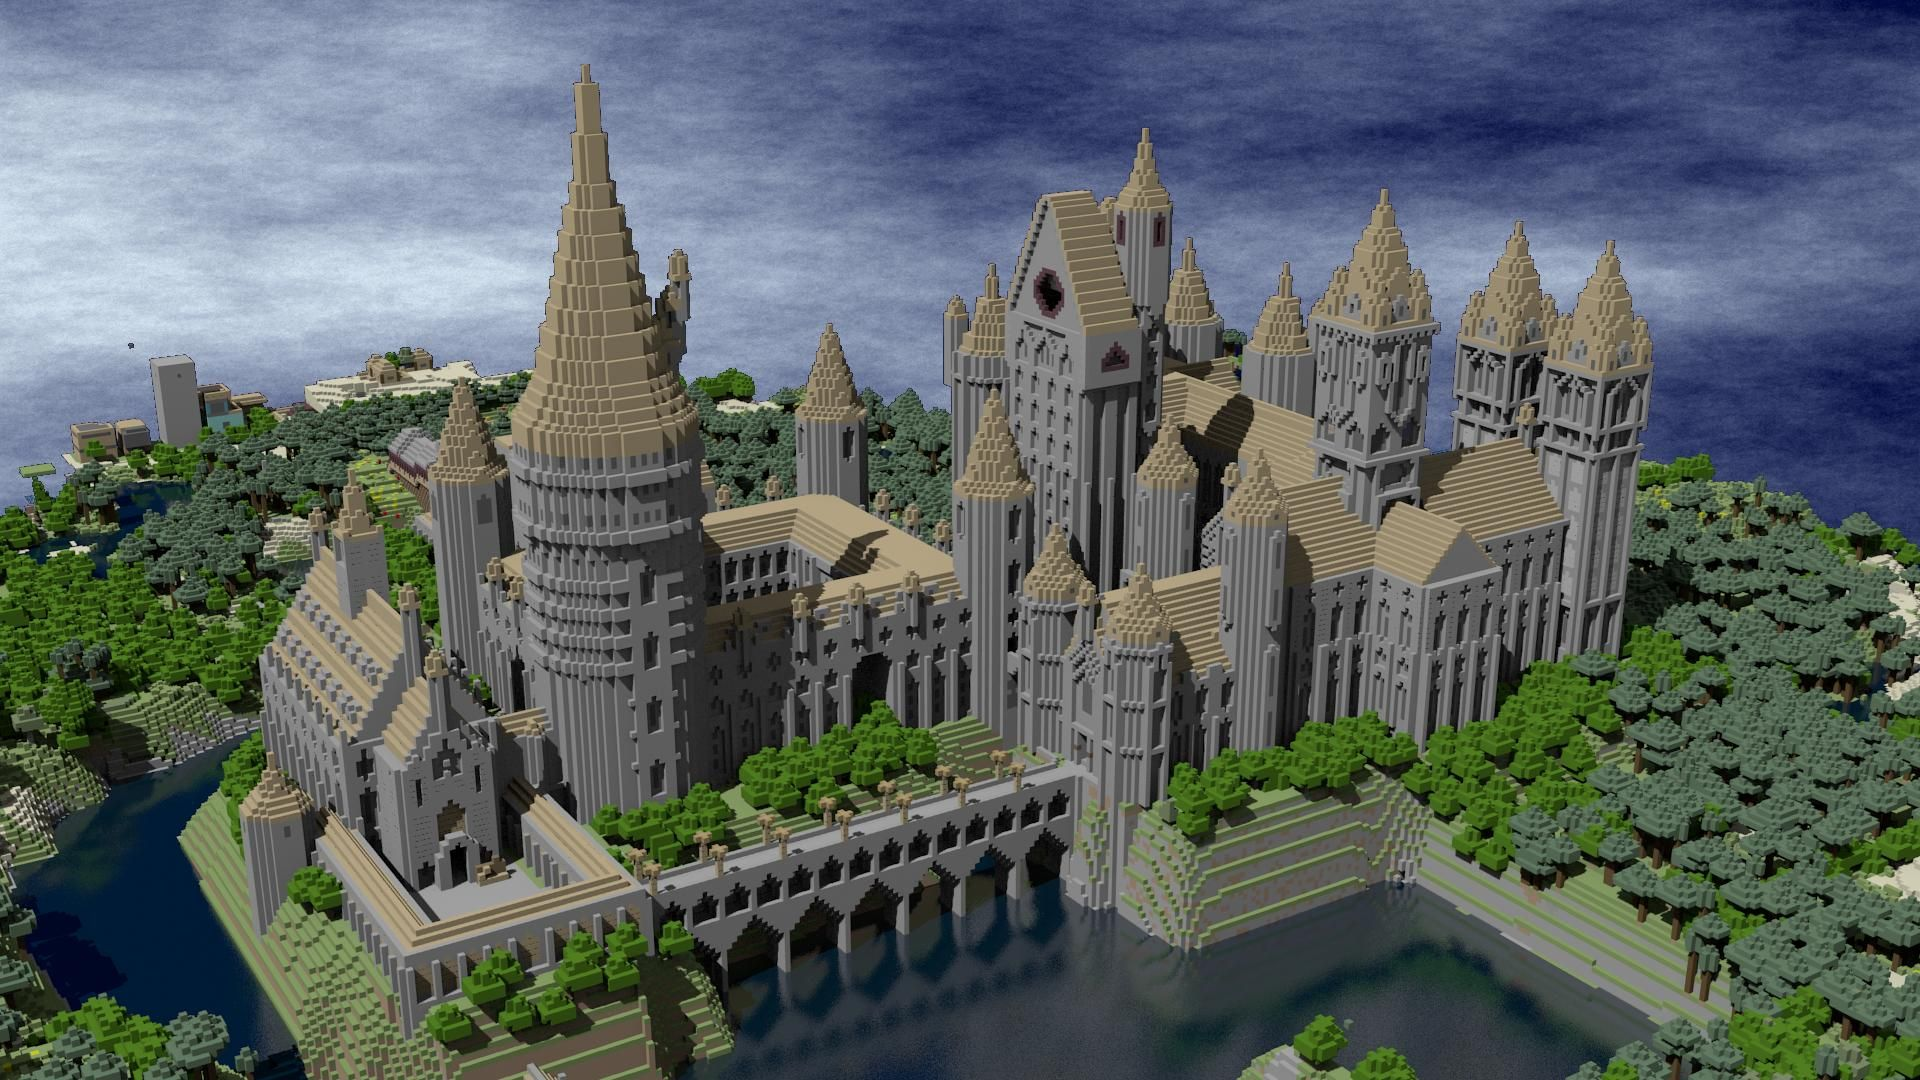 Download Wallpaper Minecraft Harry Potter - 8346dbc0670e0ddf9840364d08589514  Image_727083.jpg